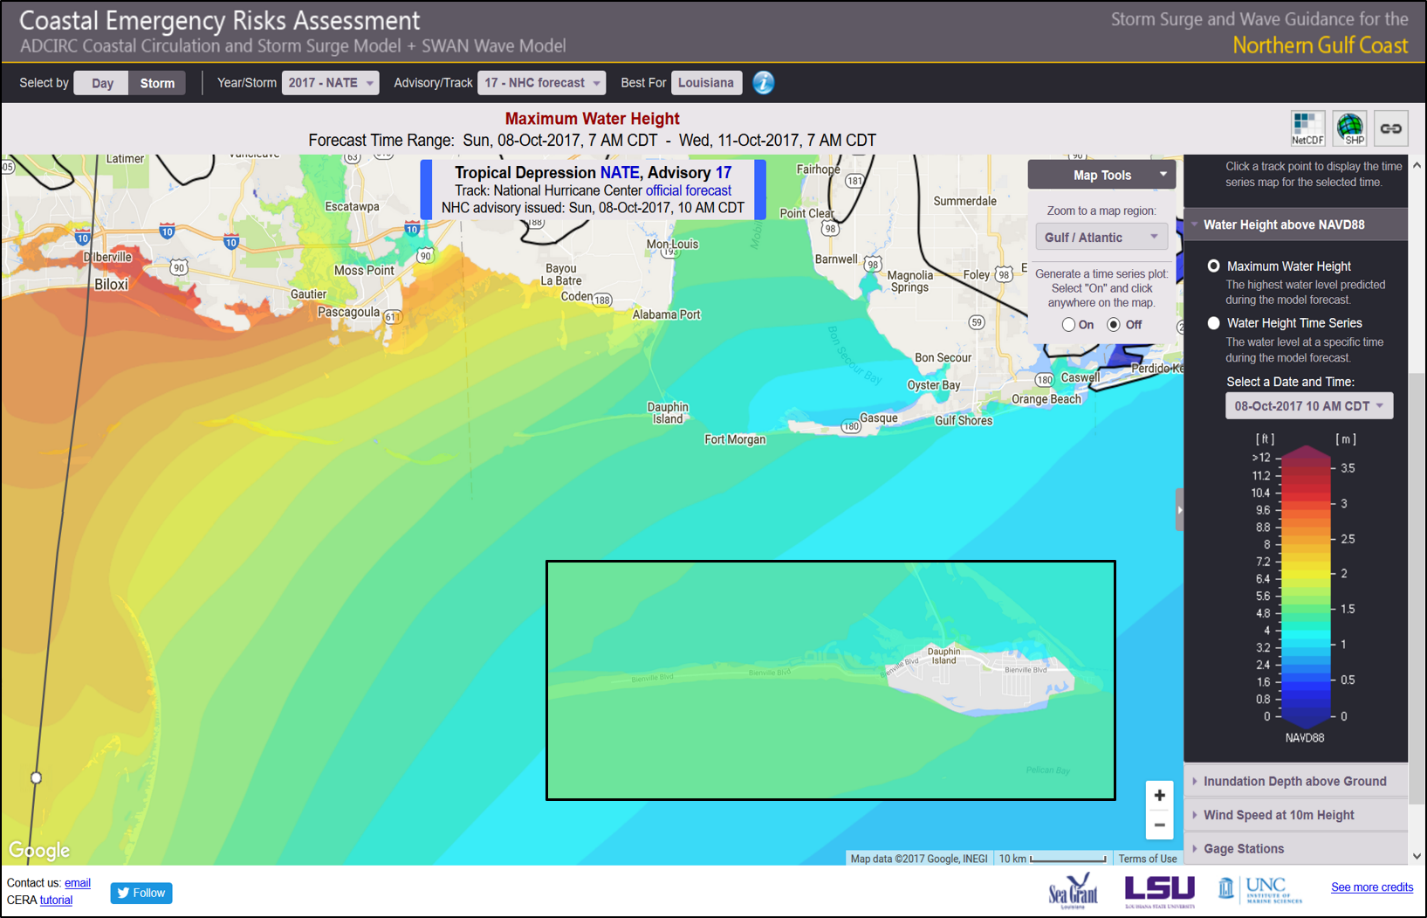 Figure 2. Screen shot of the Coastal Emergency Risks Assessment tool showing predicted surge from Hurricane Nate along the north-central Gulf Coast. Insert: specific predictions for Dauphin Island.*